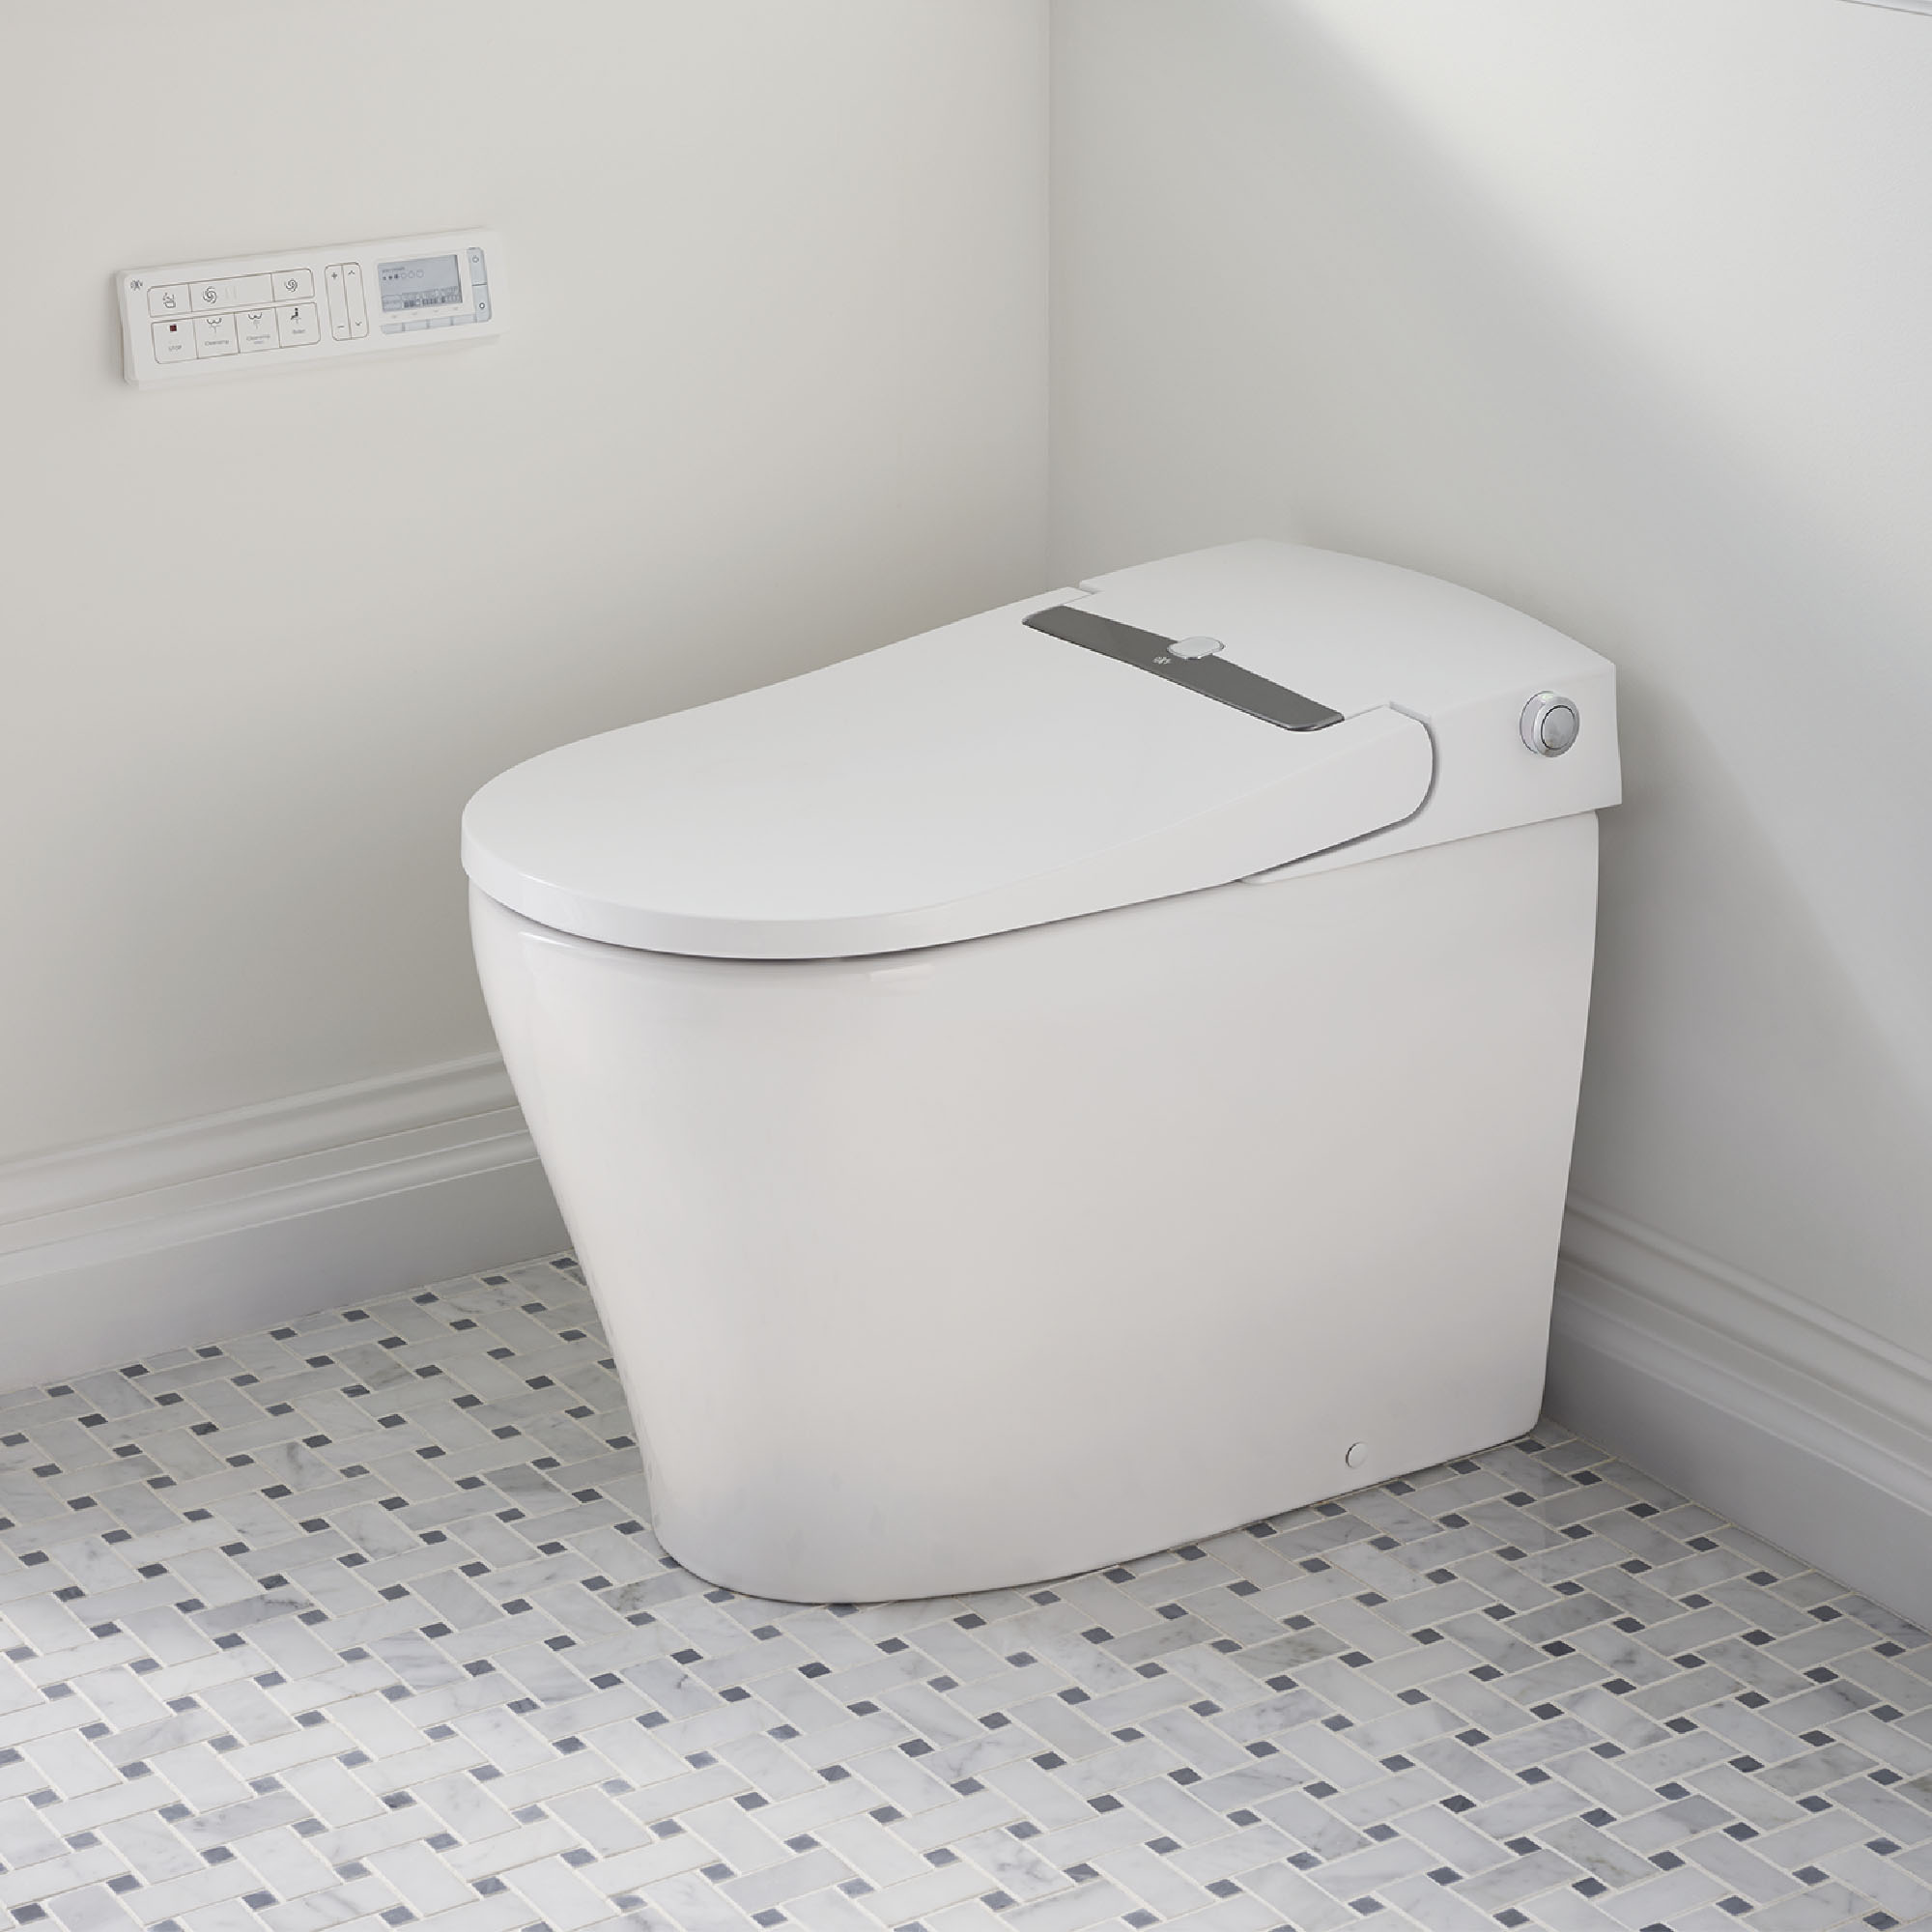 AT200 LS SpaLet Bidet Toilet